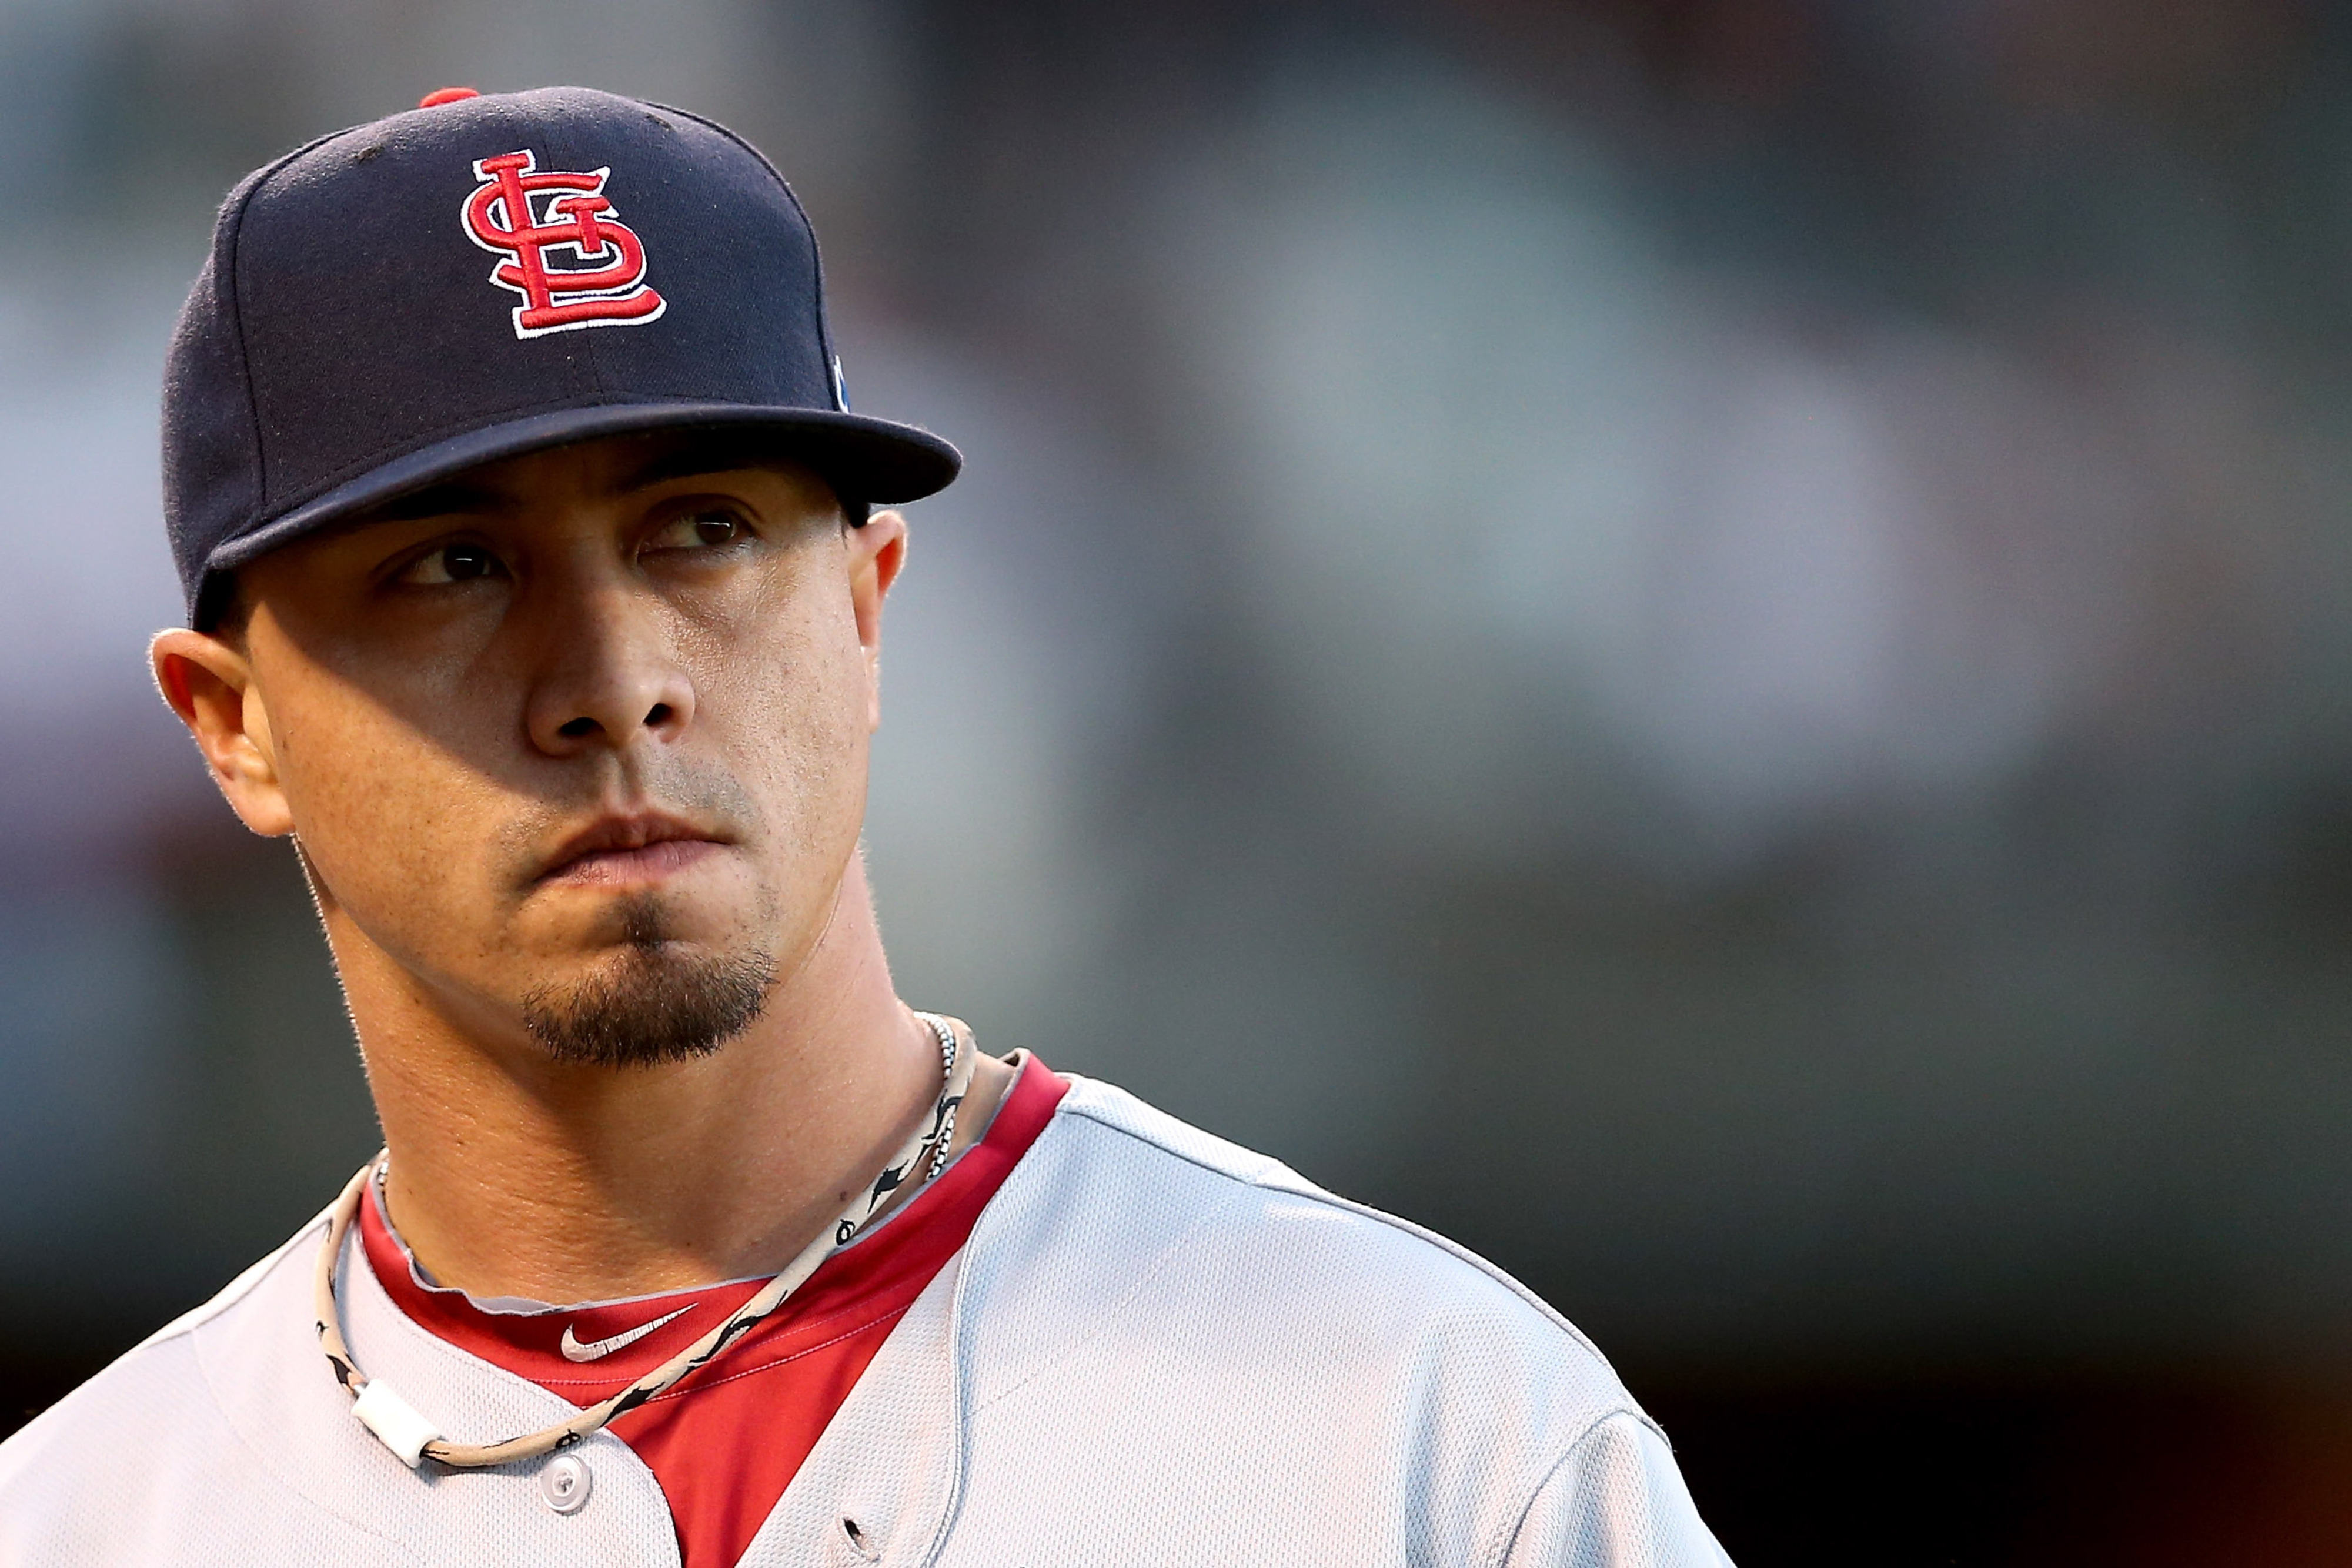 This Kyle Lohse file photo is appropriately deep-in-thought-y for his present free agency predicament.